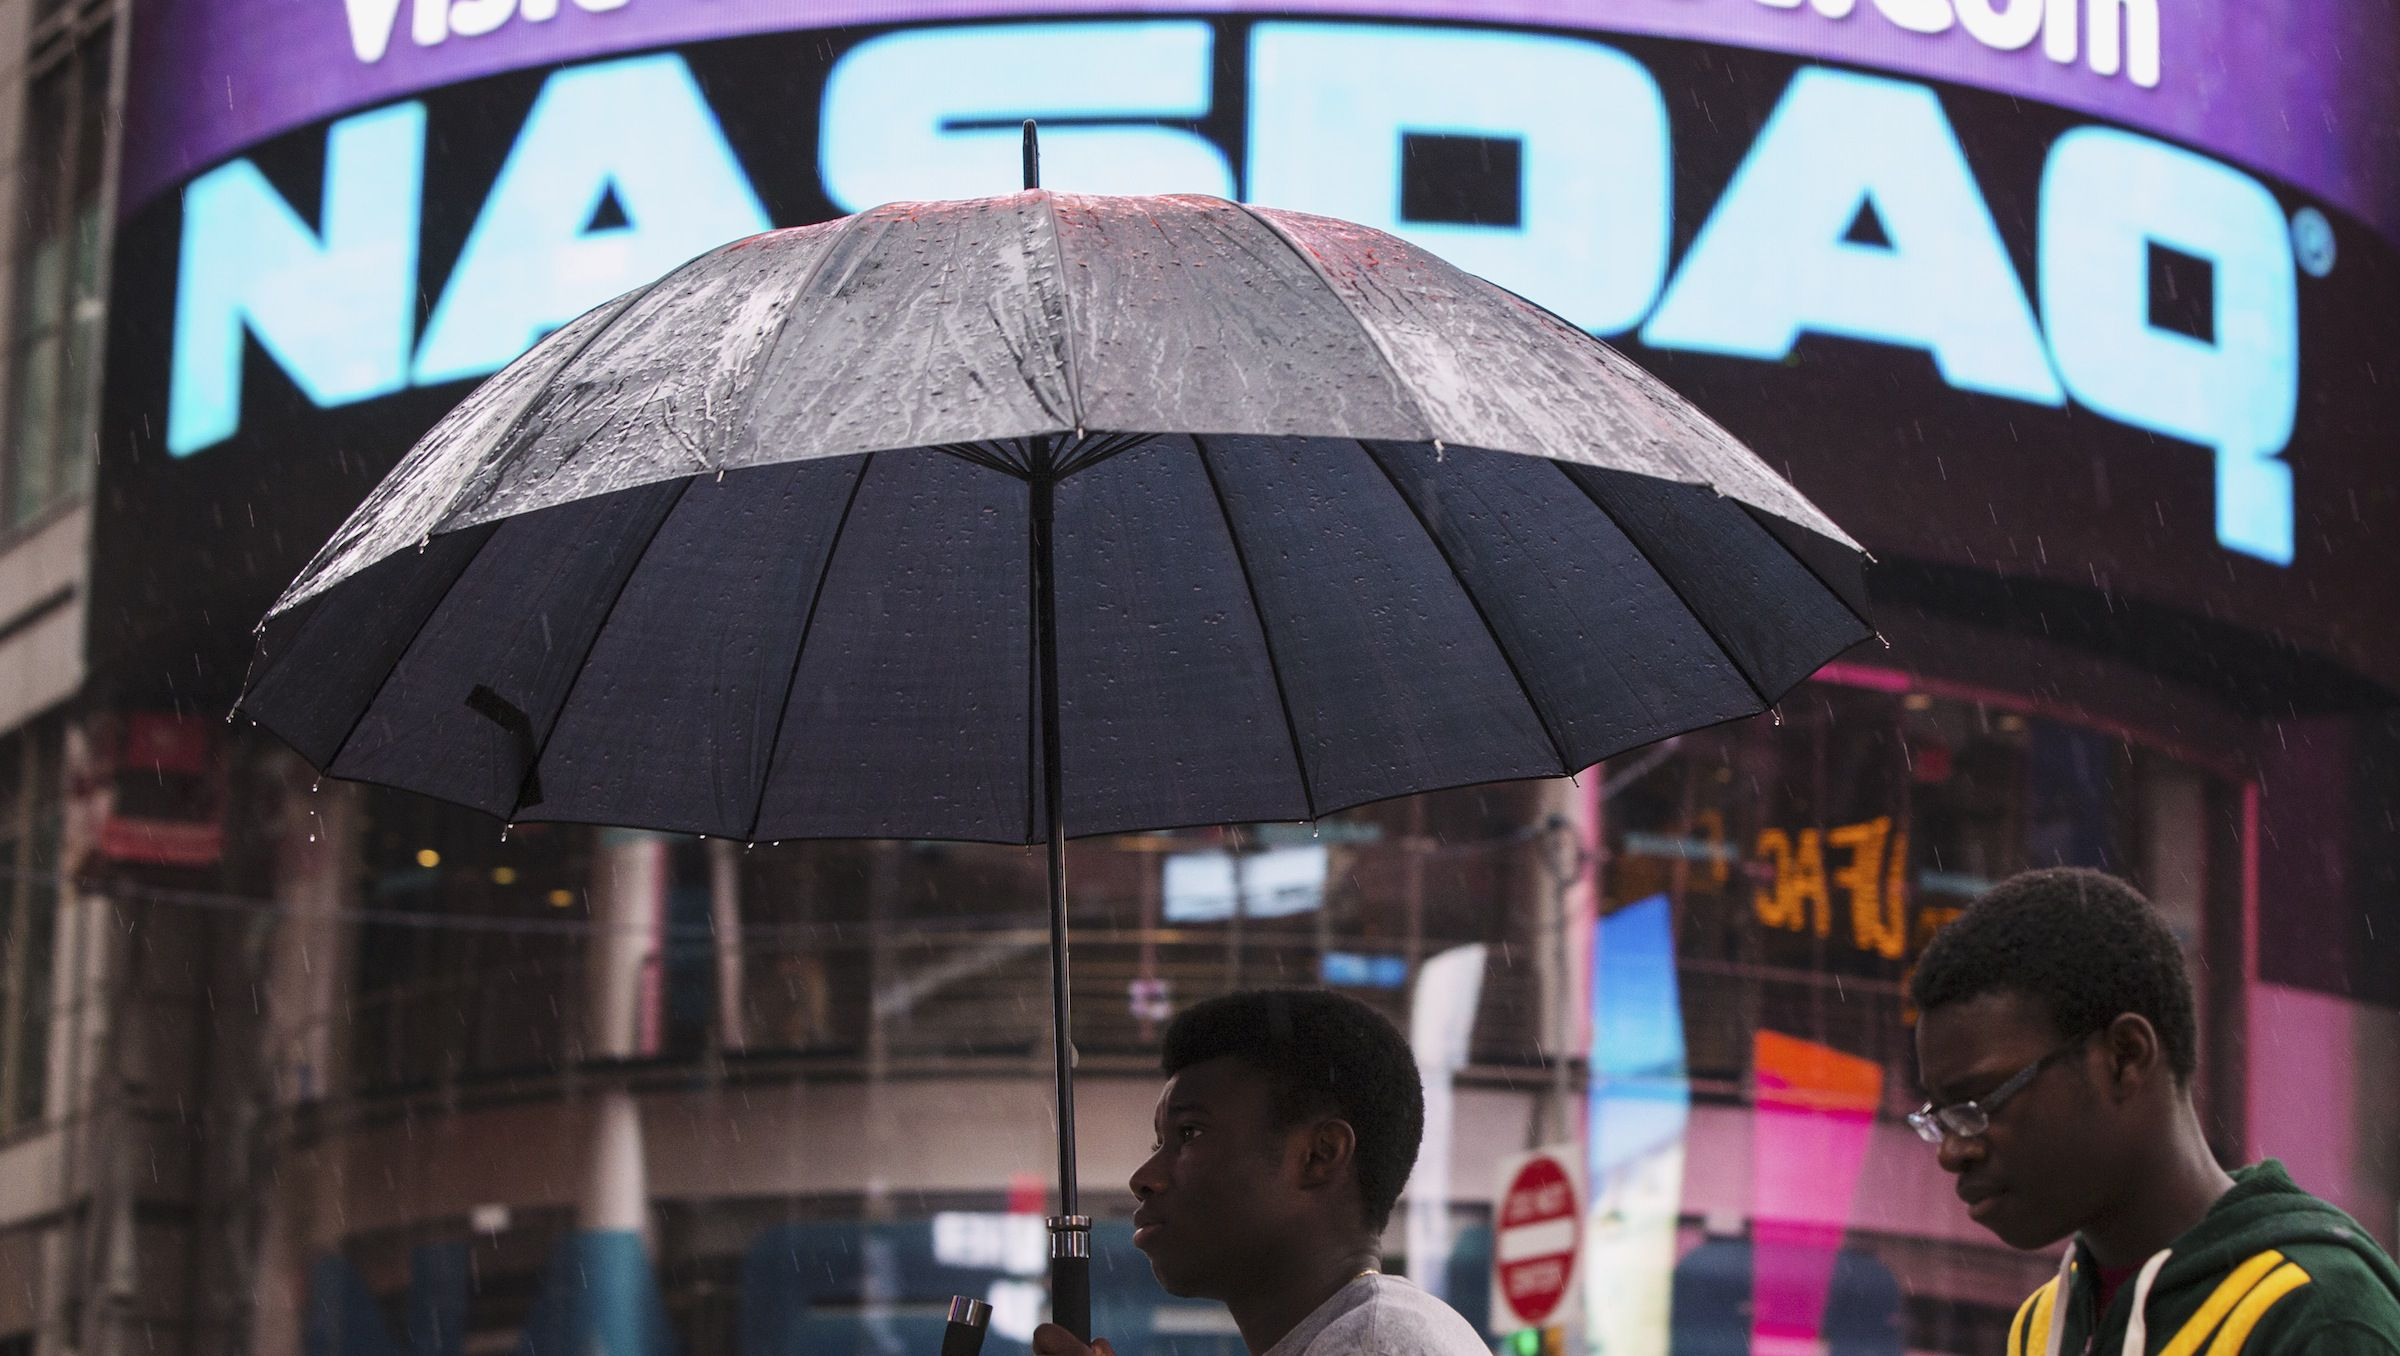 A man holds up an umbrella as he walks past the Nasdaq MarketSite in New York's Times Square, August 22, 2013. Trading in a large part of the U.S. market came to a halt for much of Thursday after an unexplained issue shut down trading on Nasdaq-listed securities, the latest black eye for the U.S. securities trading business.   REUTERS/Lucas Jackson (UNITED STATES - Tags: BUSINESS ENVIRONMENT) - RTX12TKG